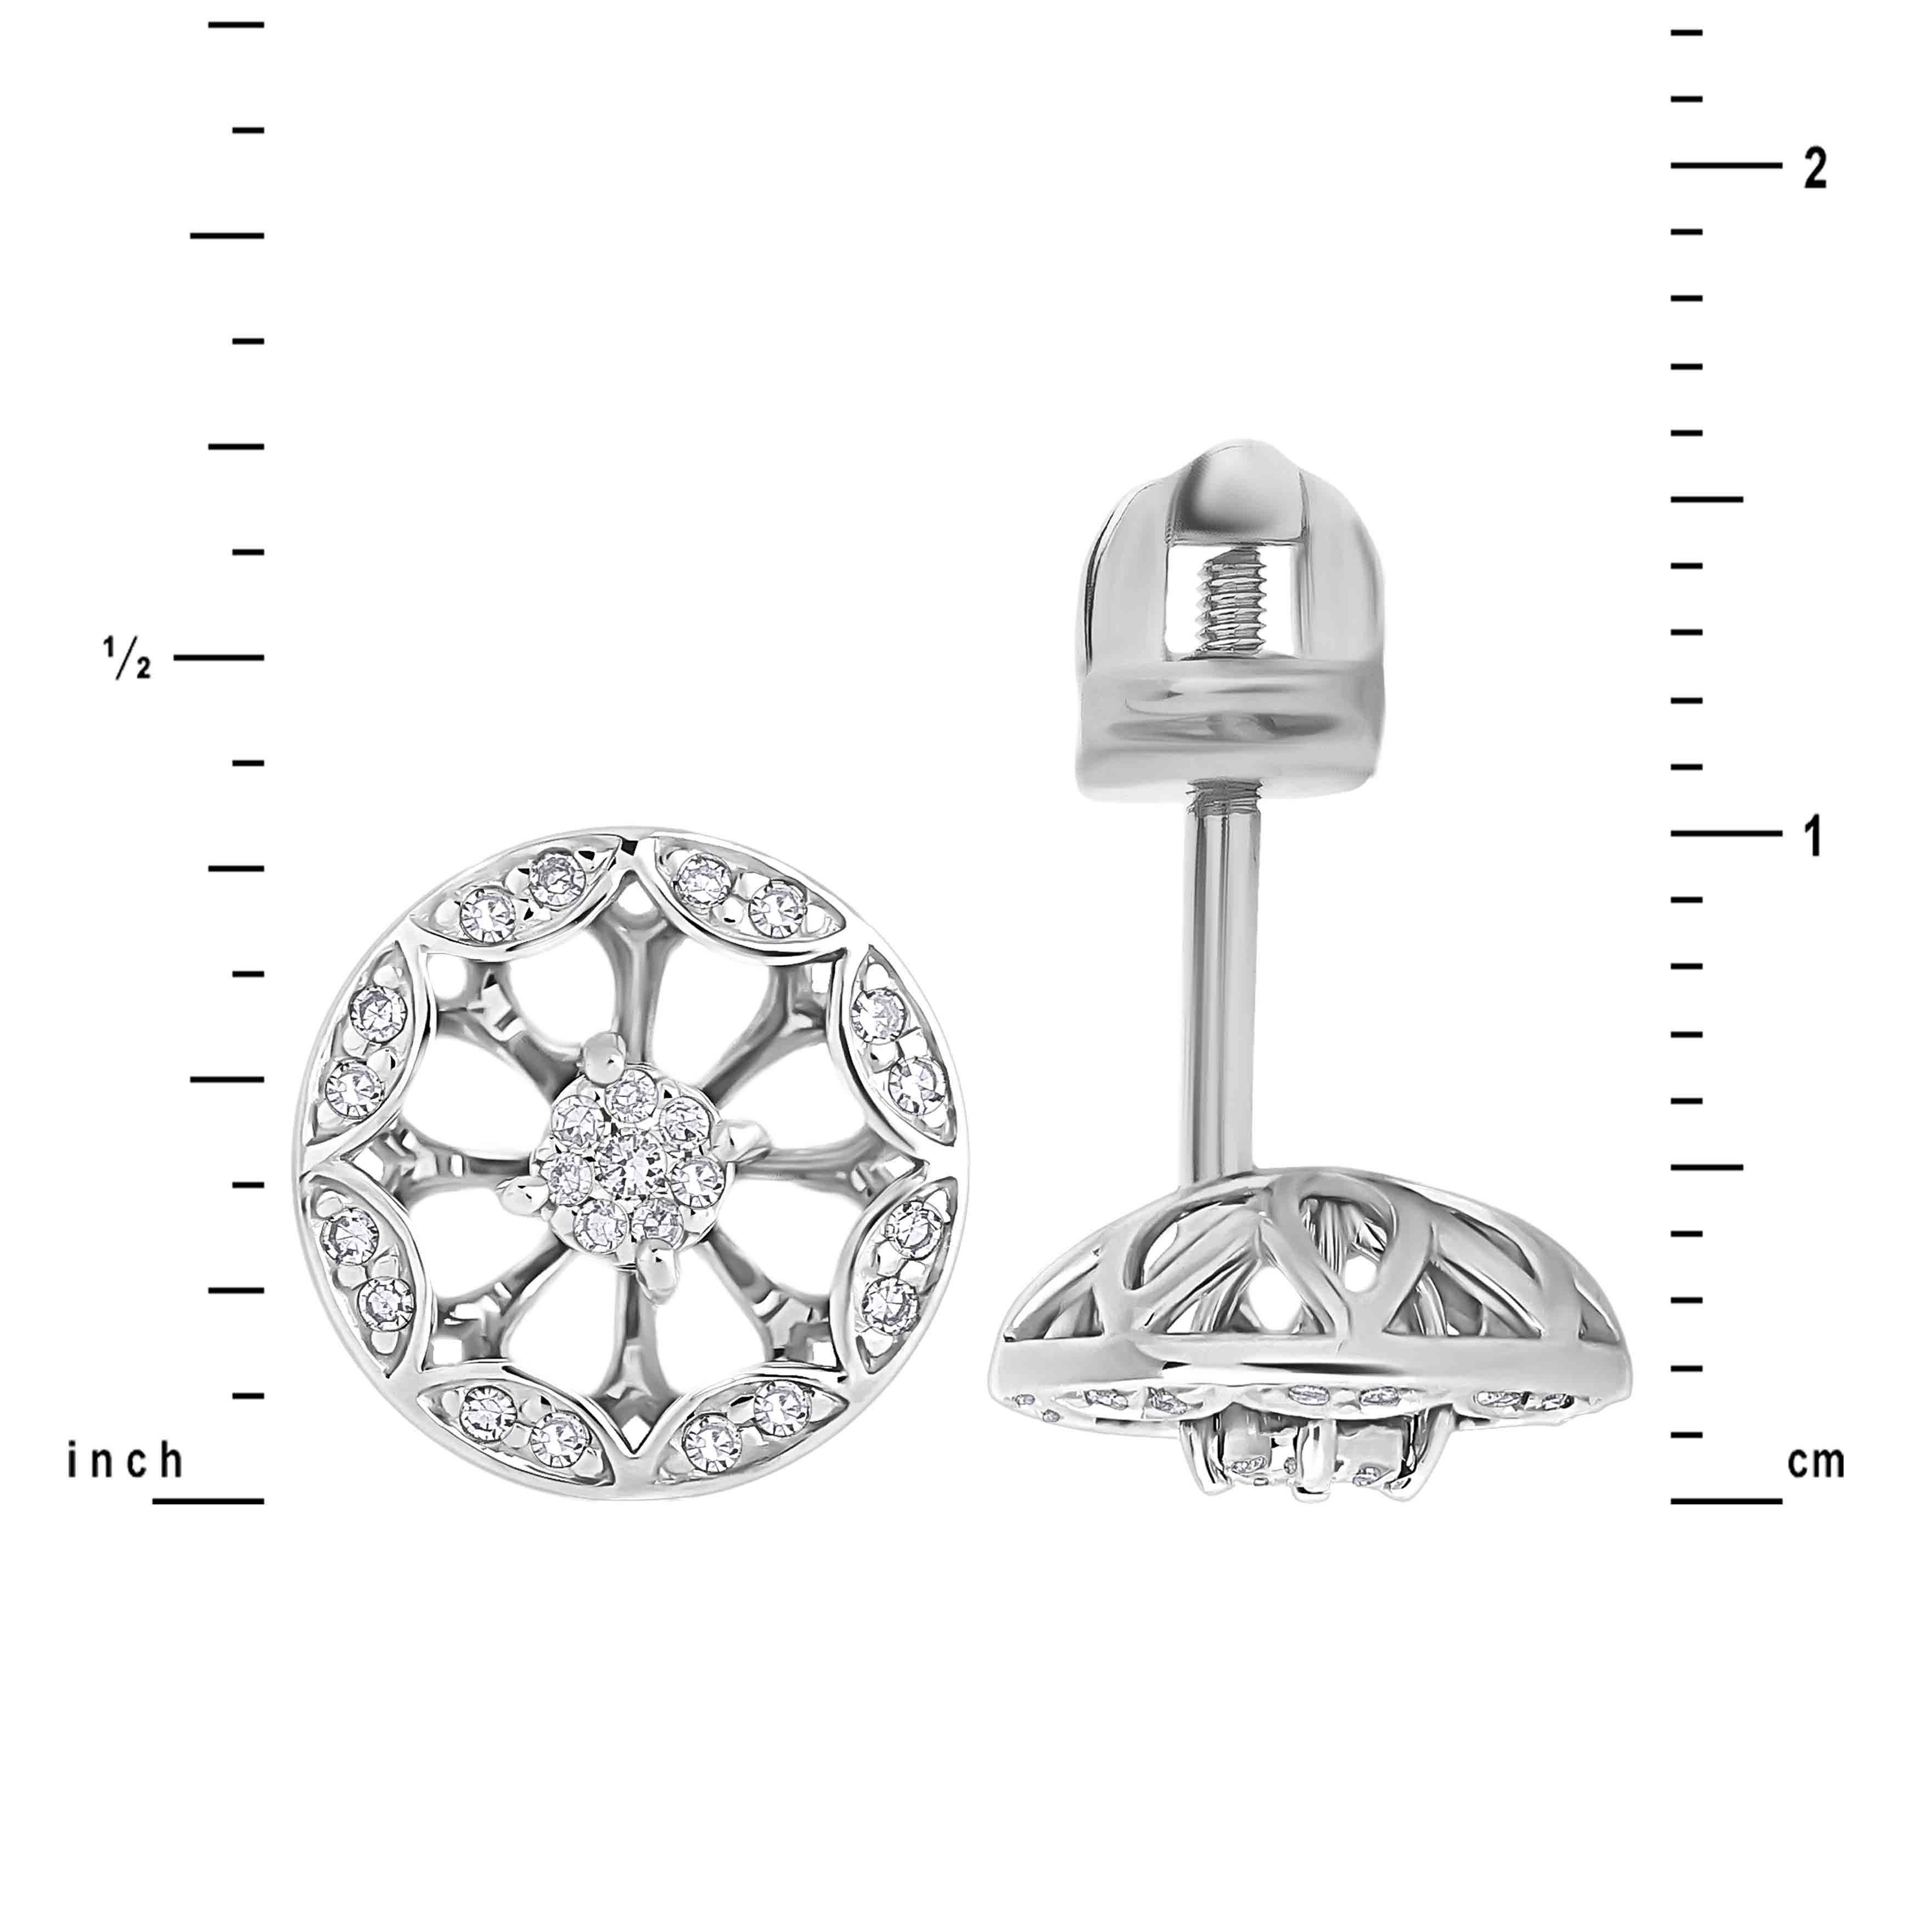 Size of Diamond Water Hyacinth Flower 14kt White Gold Studs